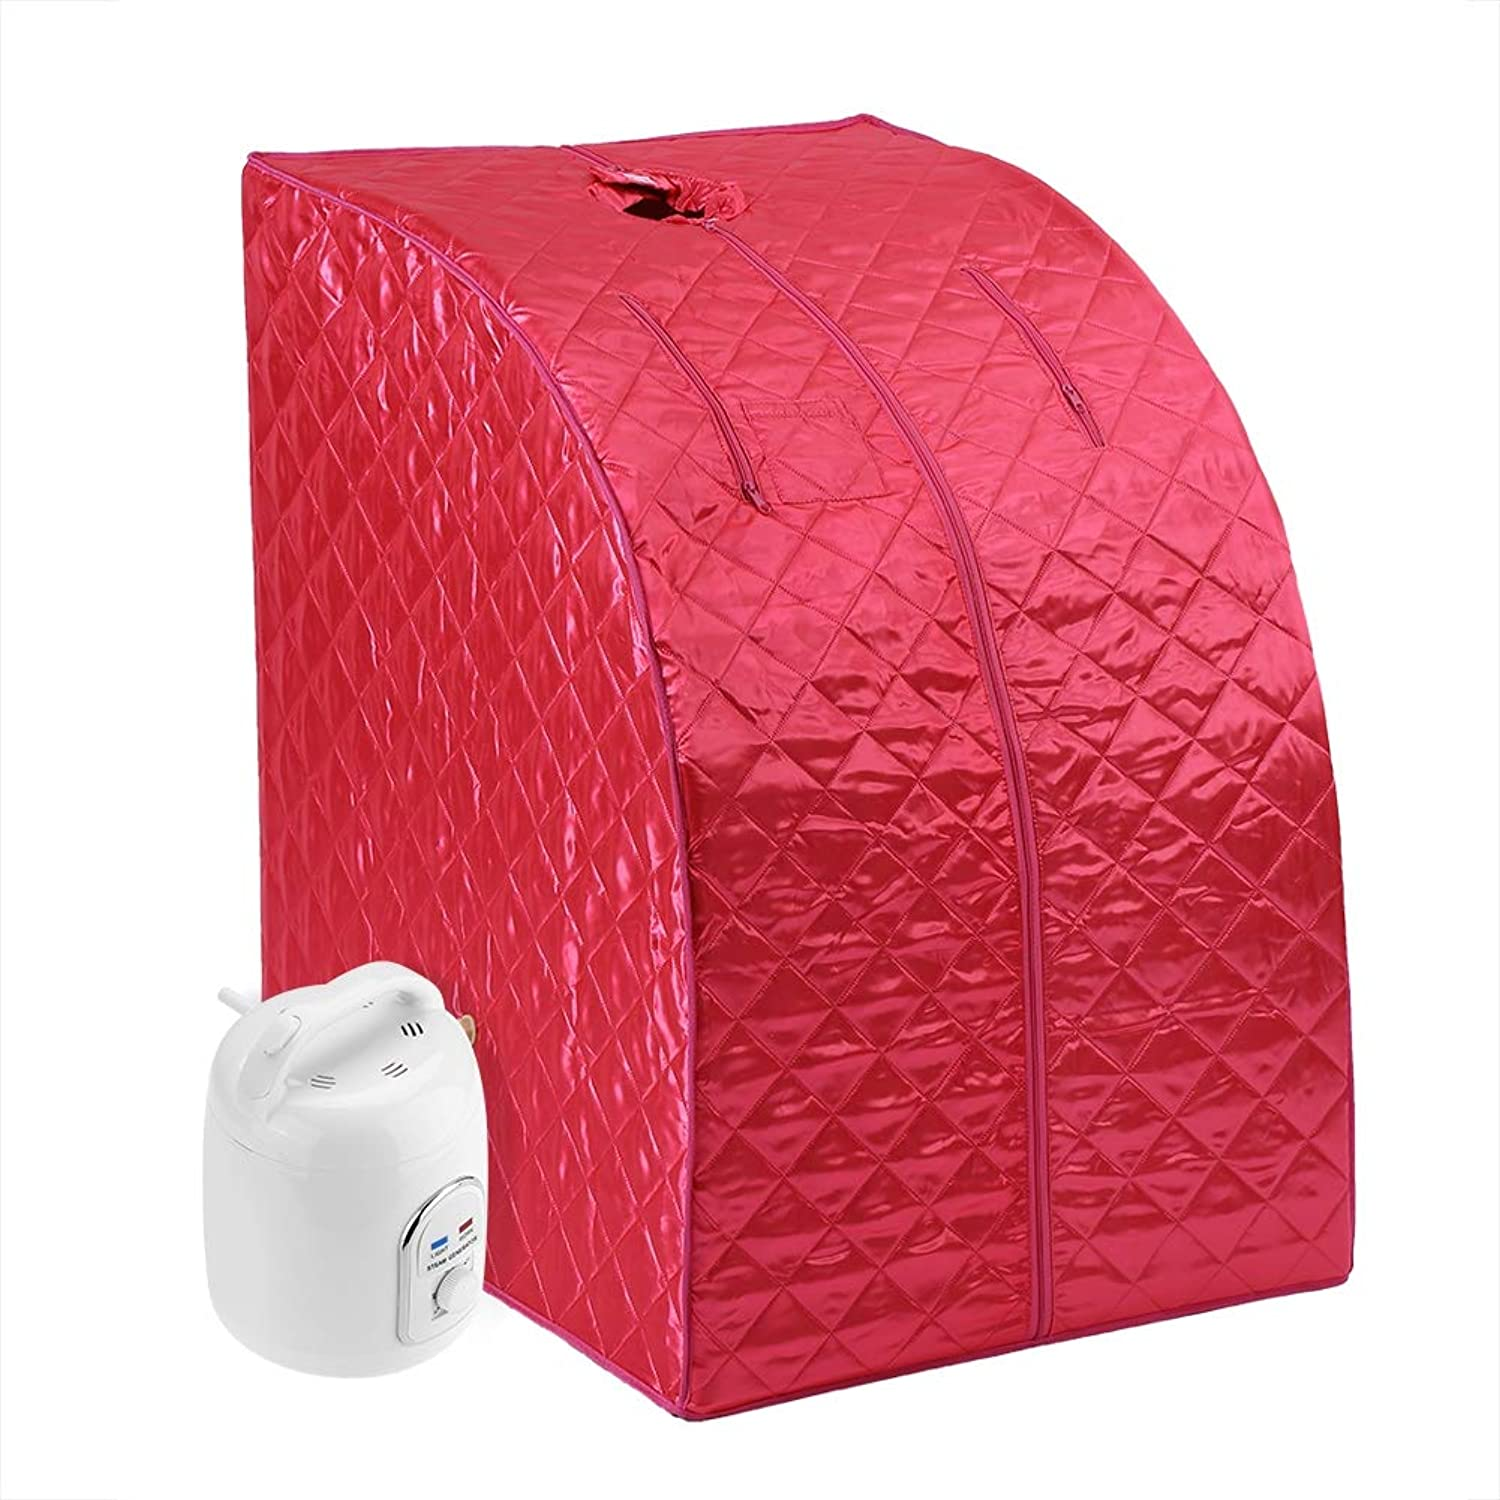 Spa Sauna, Asixx Portable 1.5L Steam Sauna or Folding Home Steam Sauna, Rejuvenator Portable Sauna Suitable for Lose Weight, Remove Toxin, Reduce Stress and Fatigue